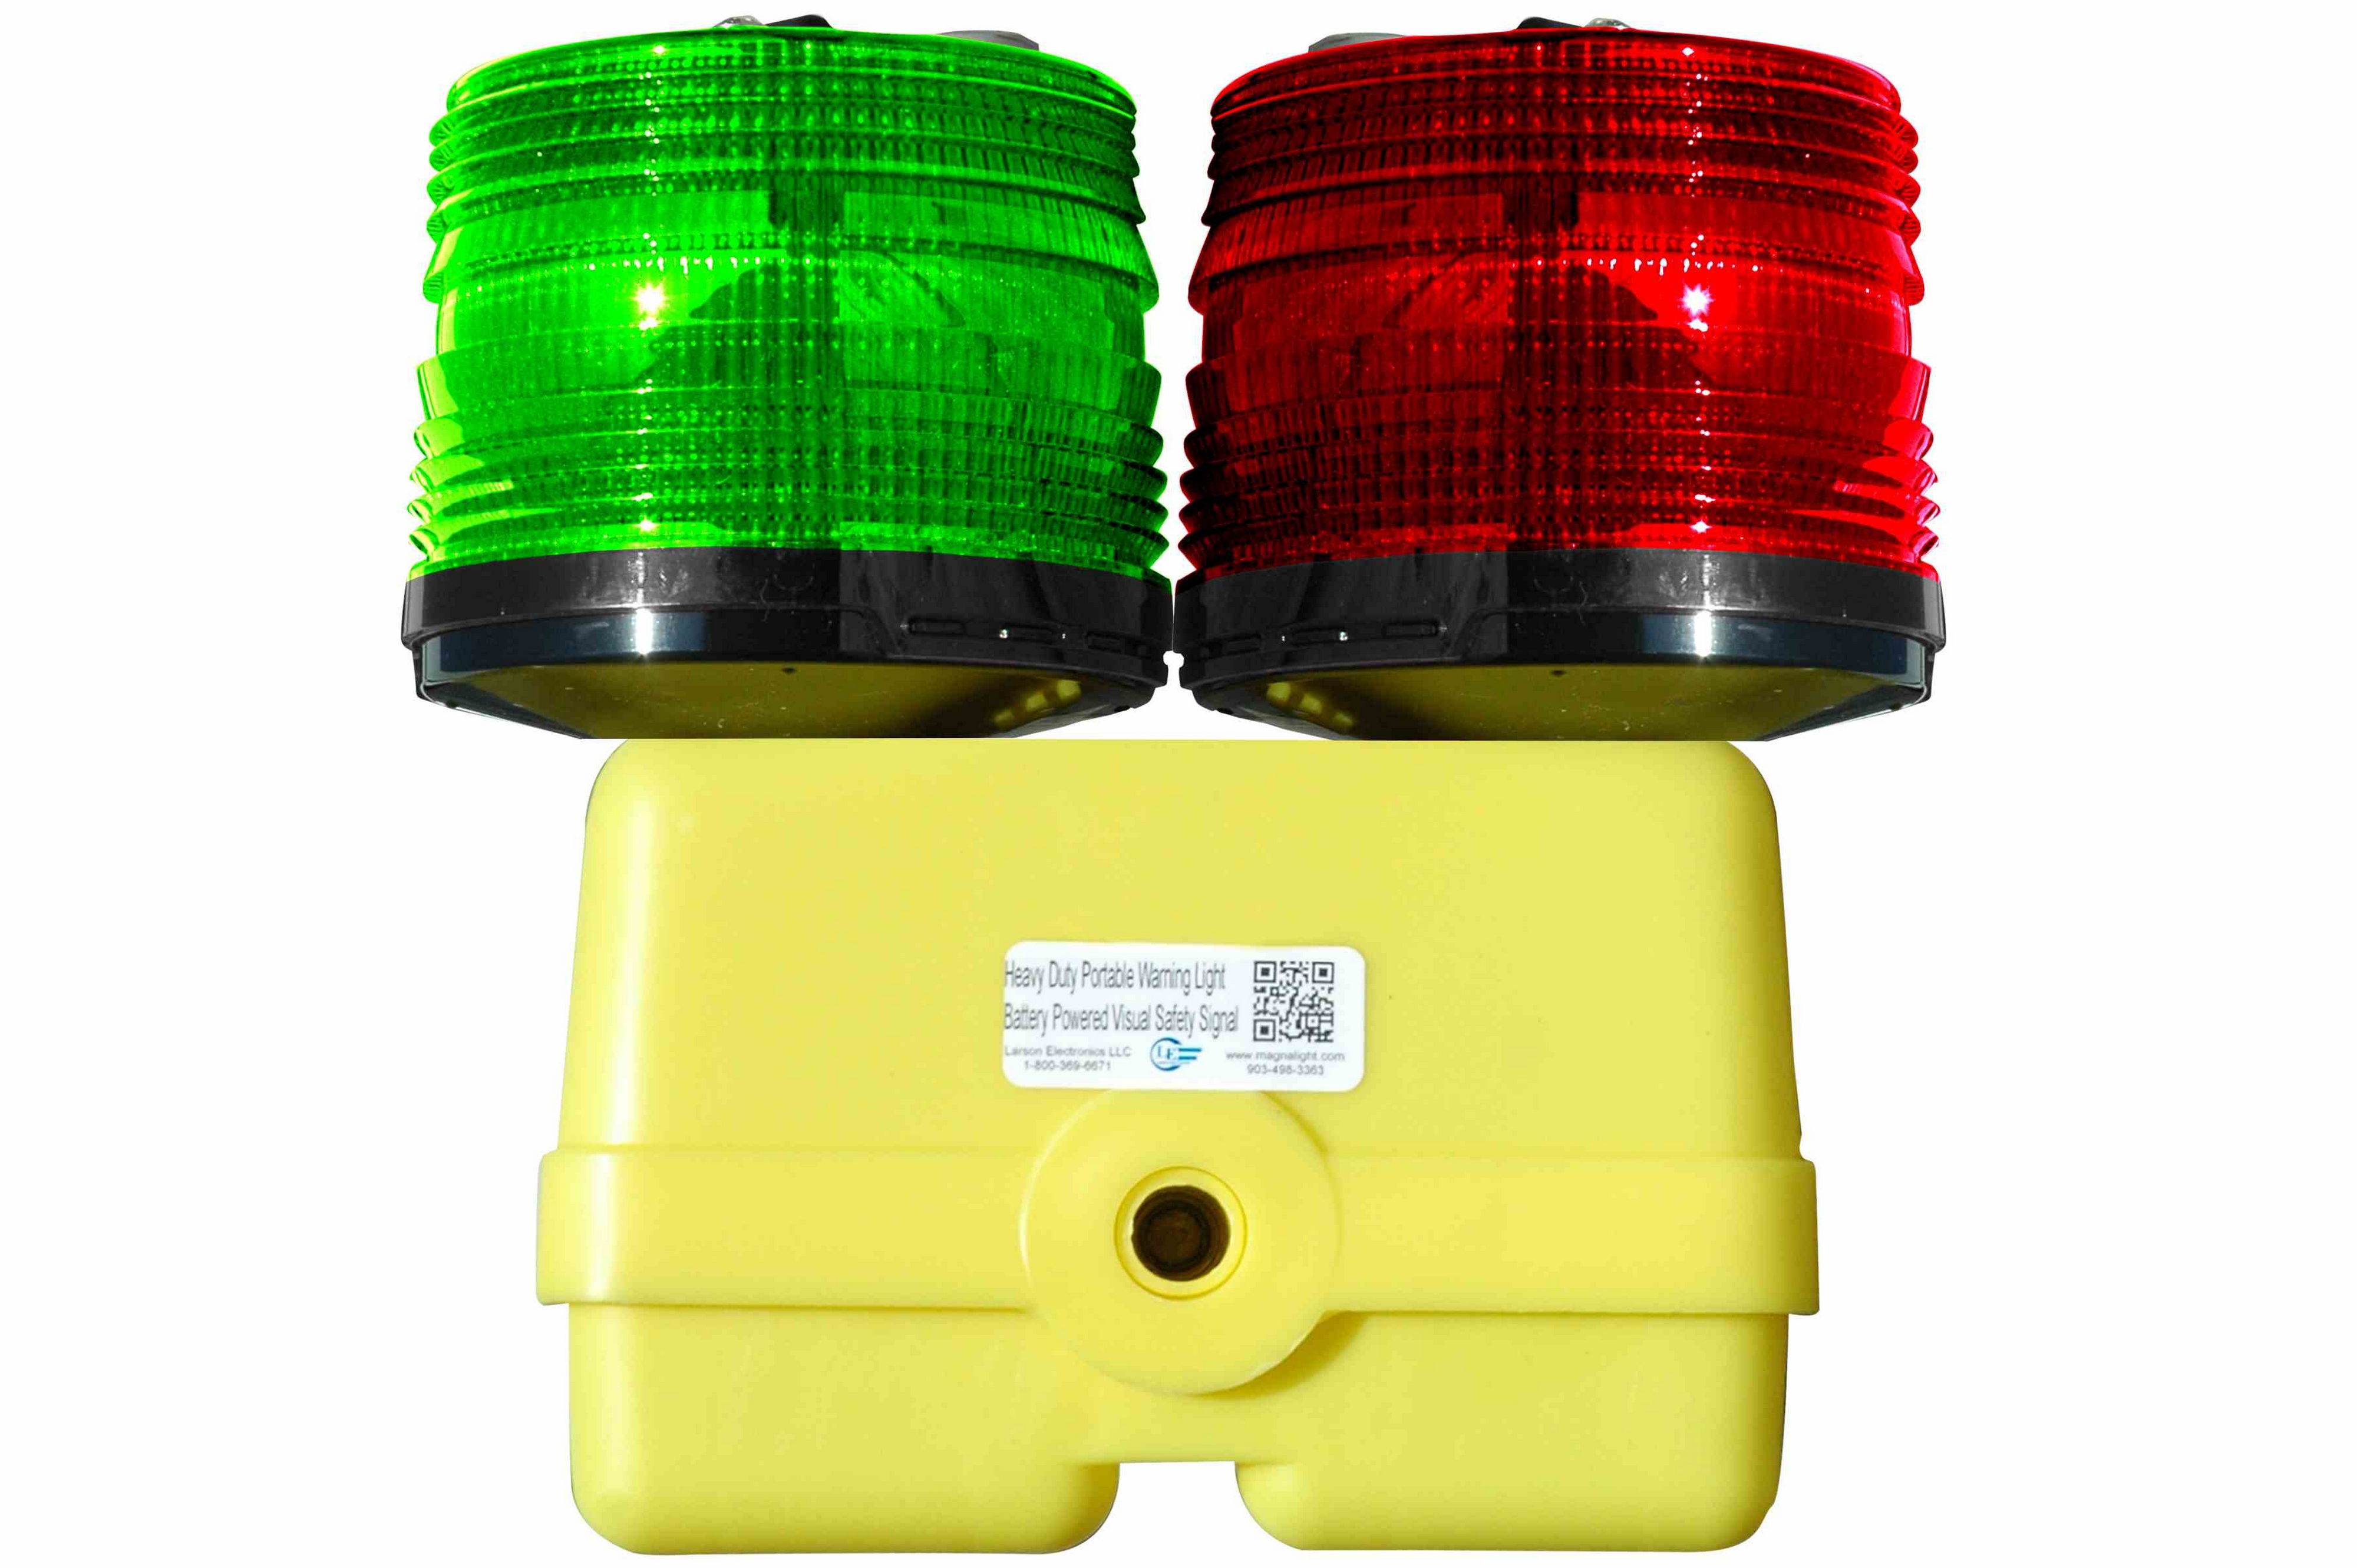 heavy duty emergency runway light battery powered red. Black Bedroom Furniture Sets. Home Design Ideas